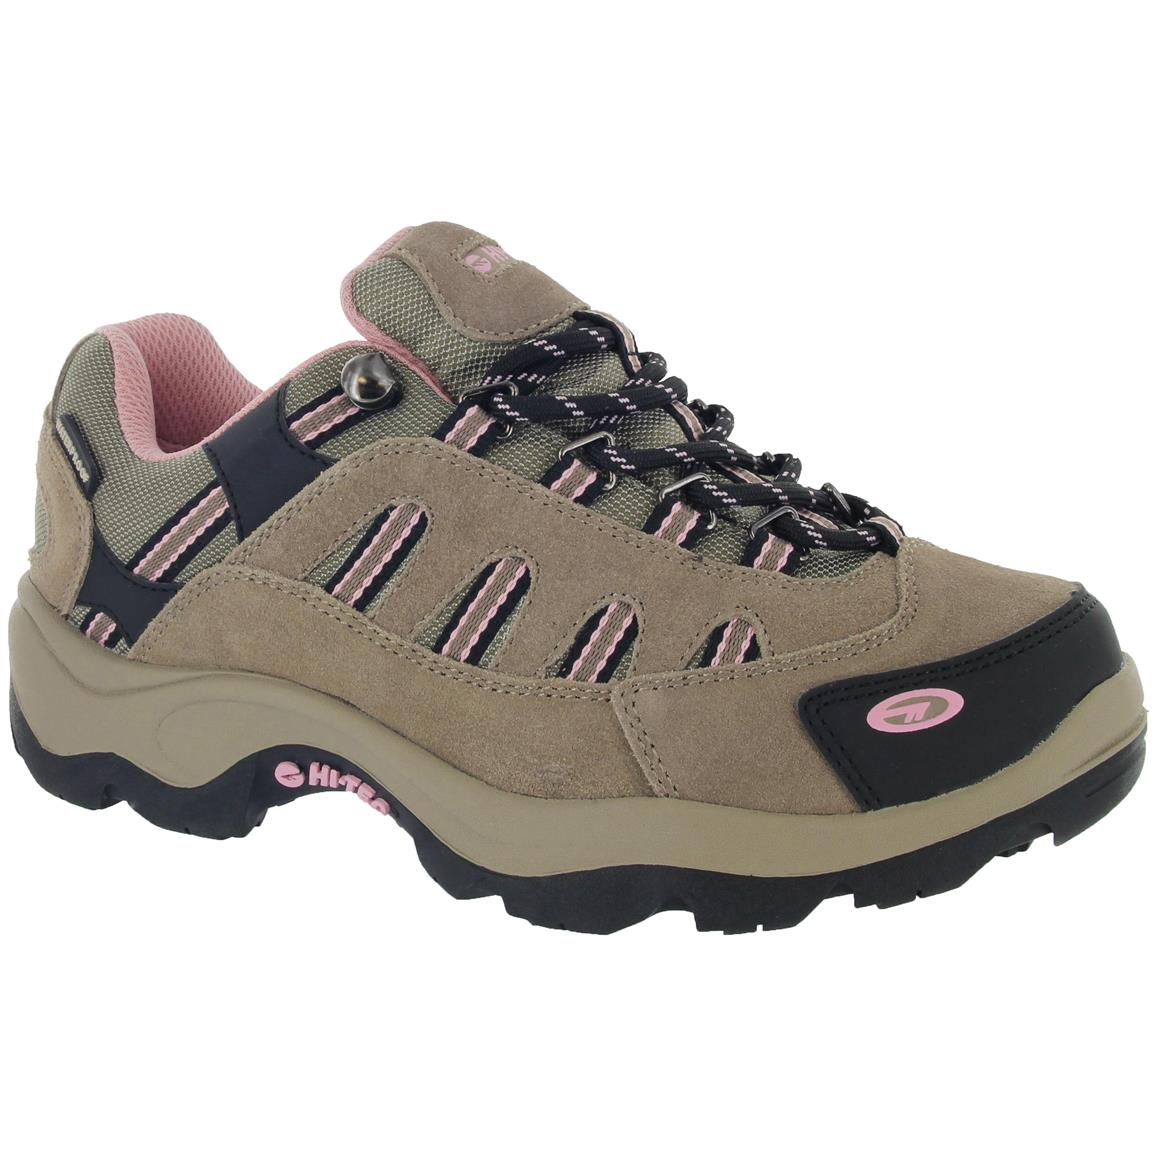 Hi-Tec Bandera Women's Low Hiking Boots, Waterproof, Taupe / Blush